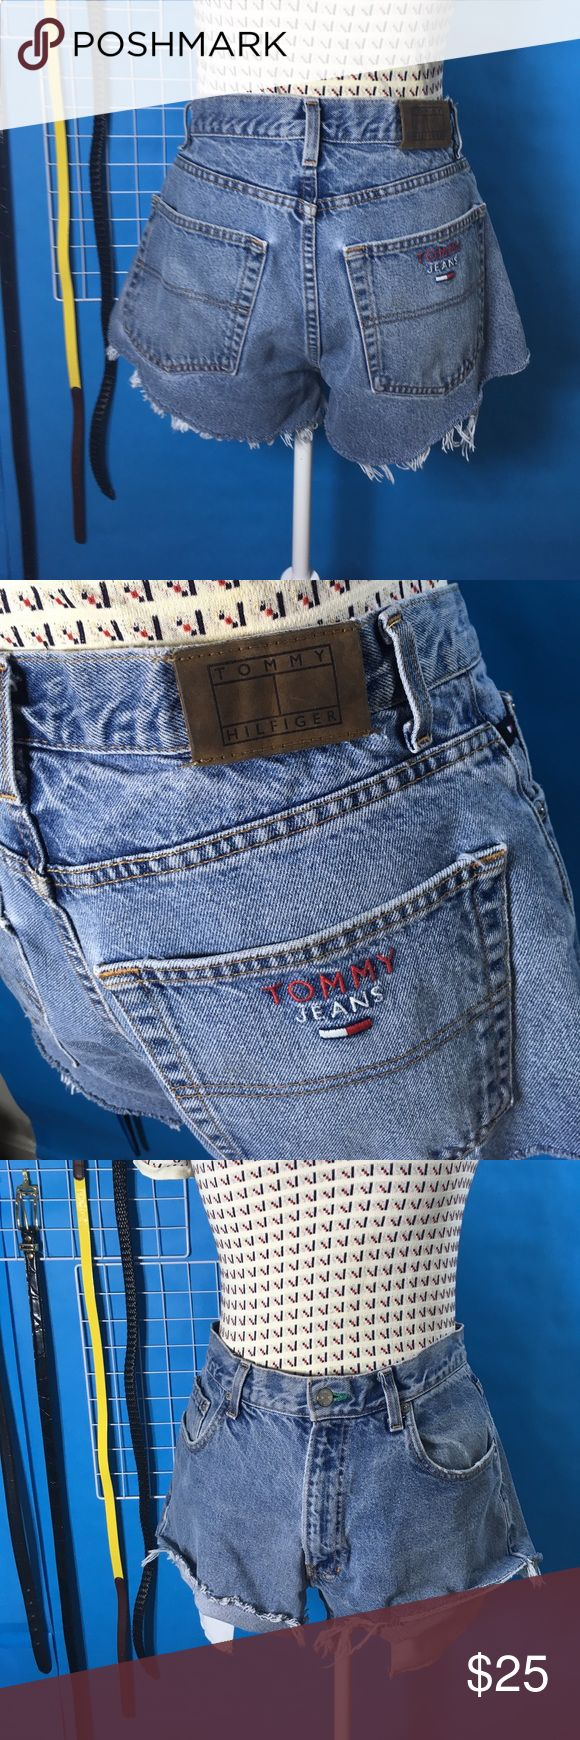 "Vintage tommy jean cutoff shorts - 12 Men's size 34 jeans cut into high waisted jean cutoffs. 34"" waist or women's size 12. 3"" inseam, 12"" rise, 11"" long at sides. Tommy Hilfiger Jeans"